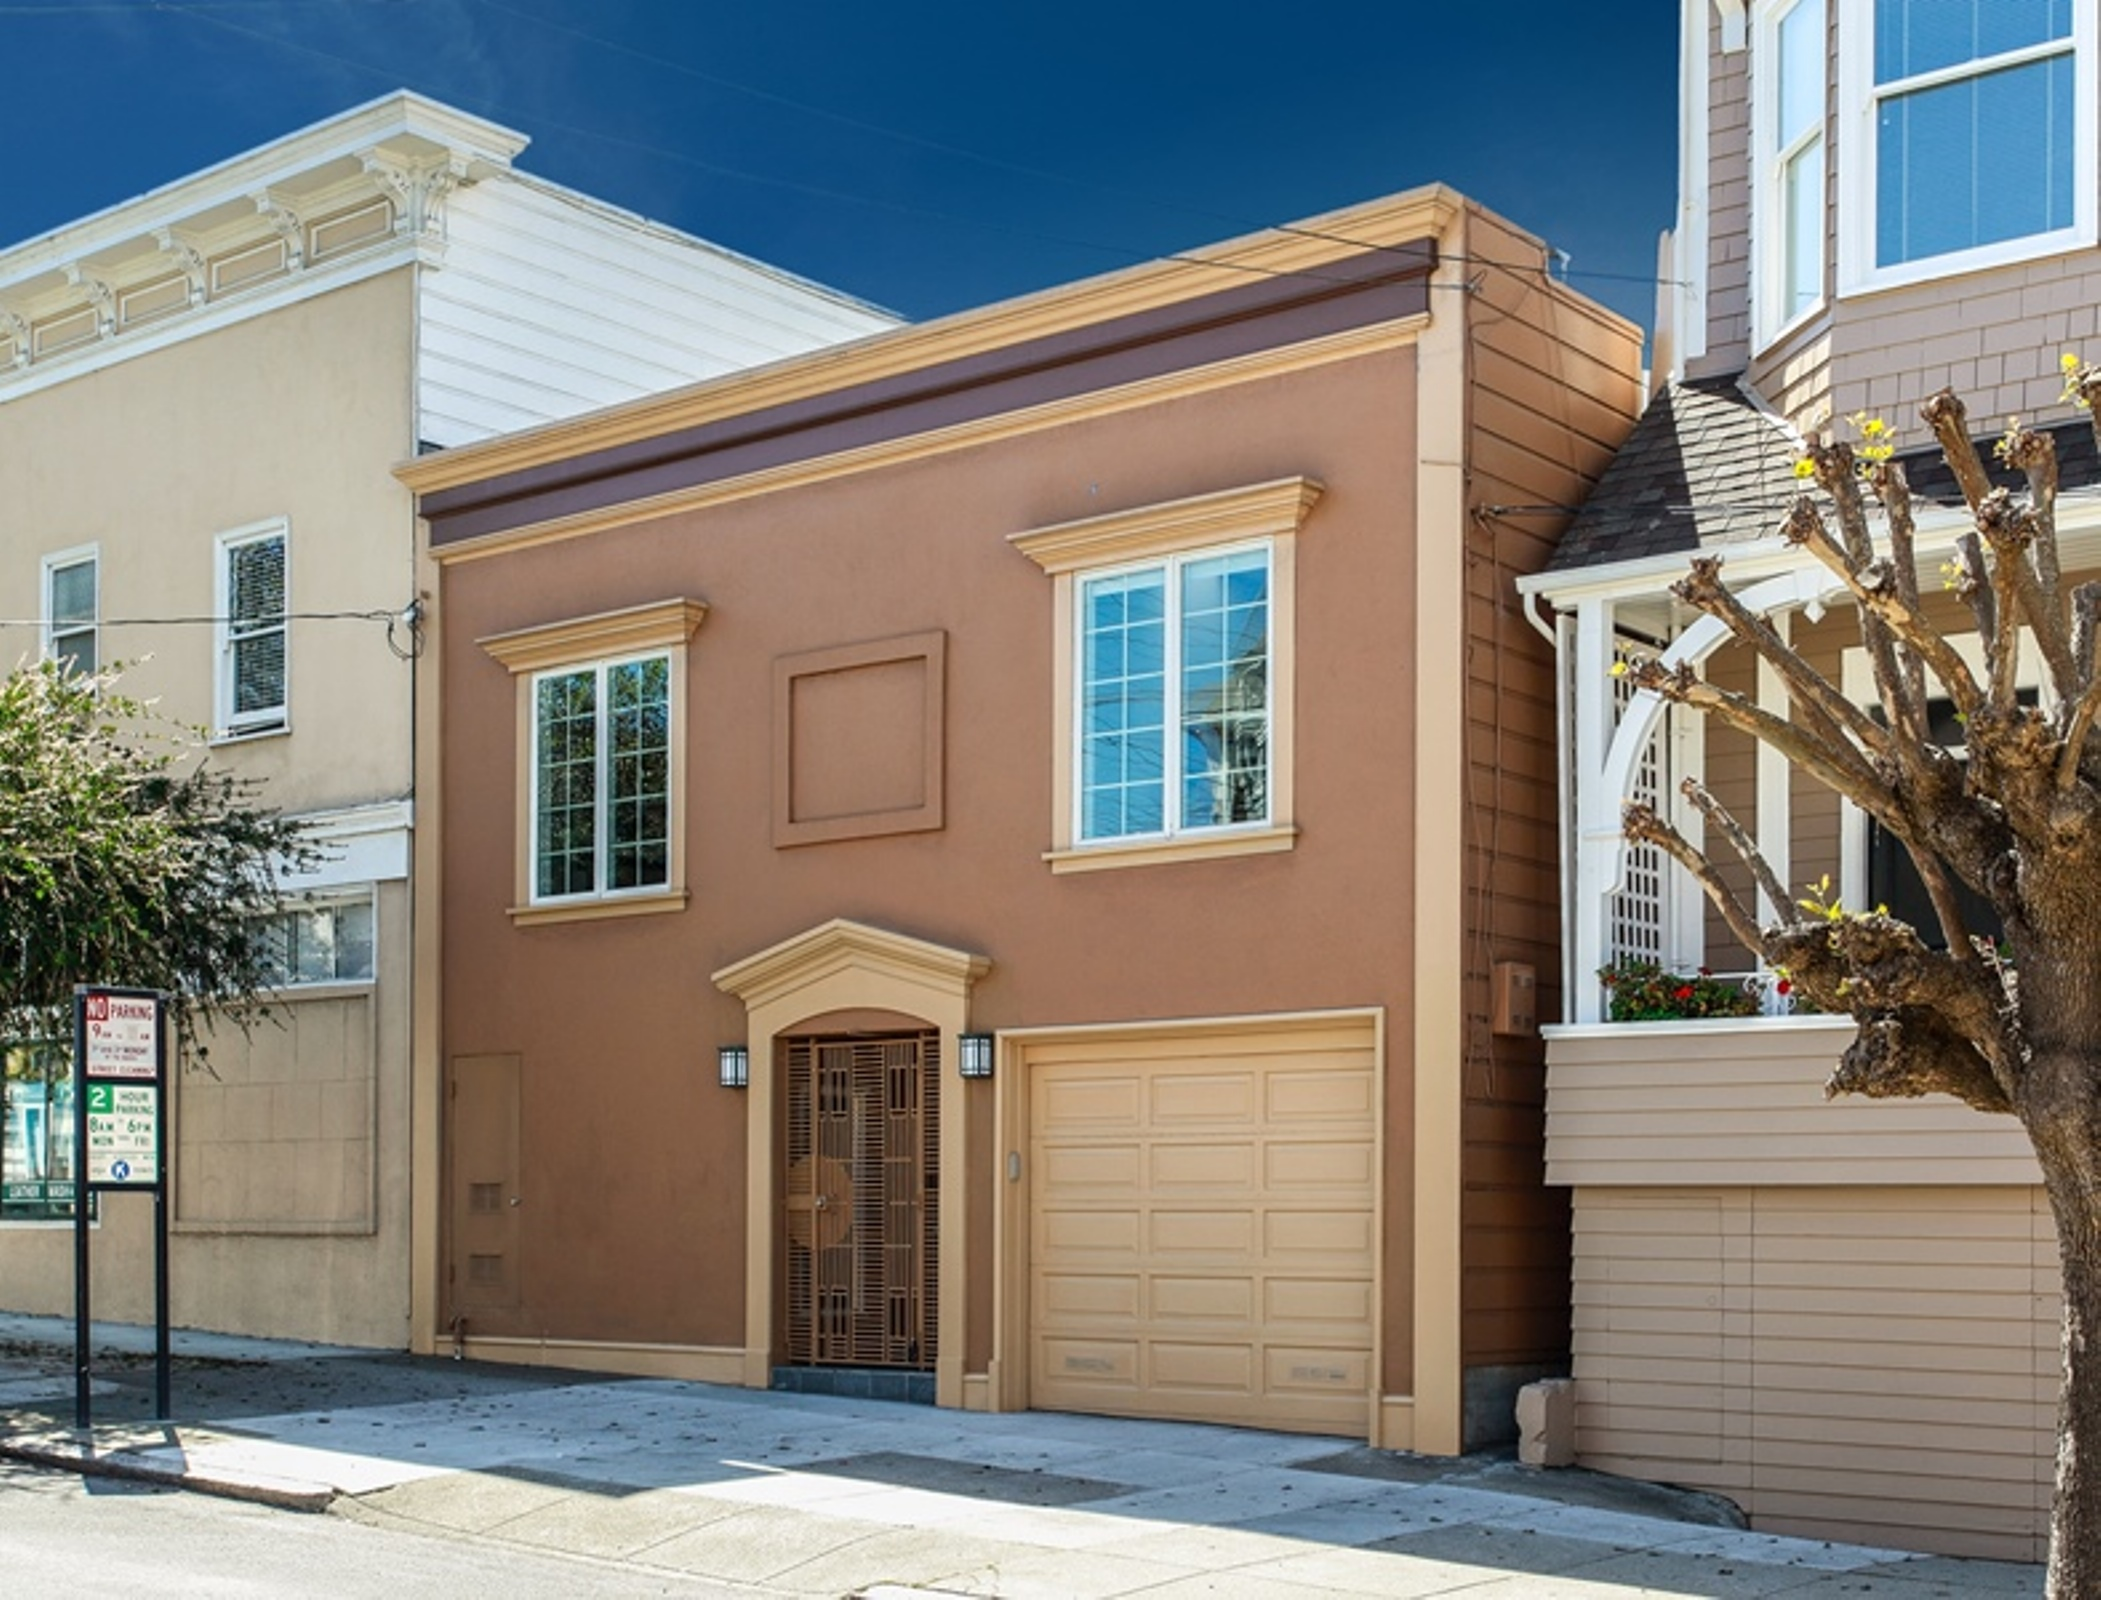 Single Family Home for Sale at 3009 Webster, San Francisco 3009 Webster St San Francisco, California, 94123 United States